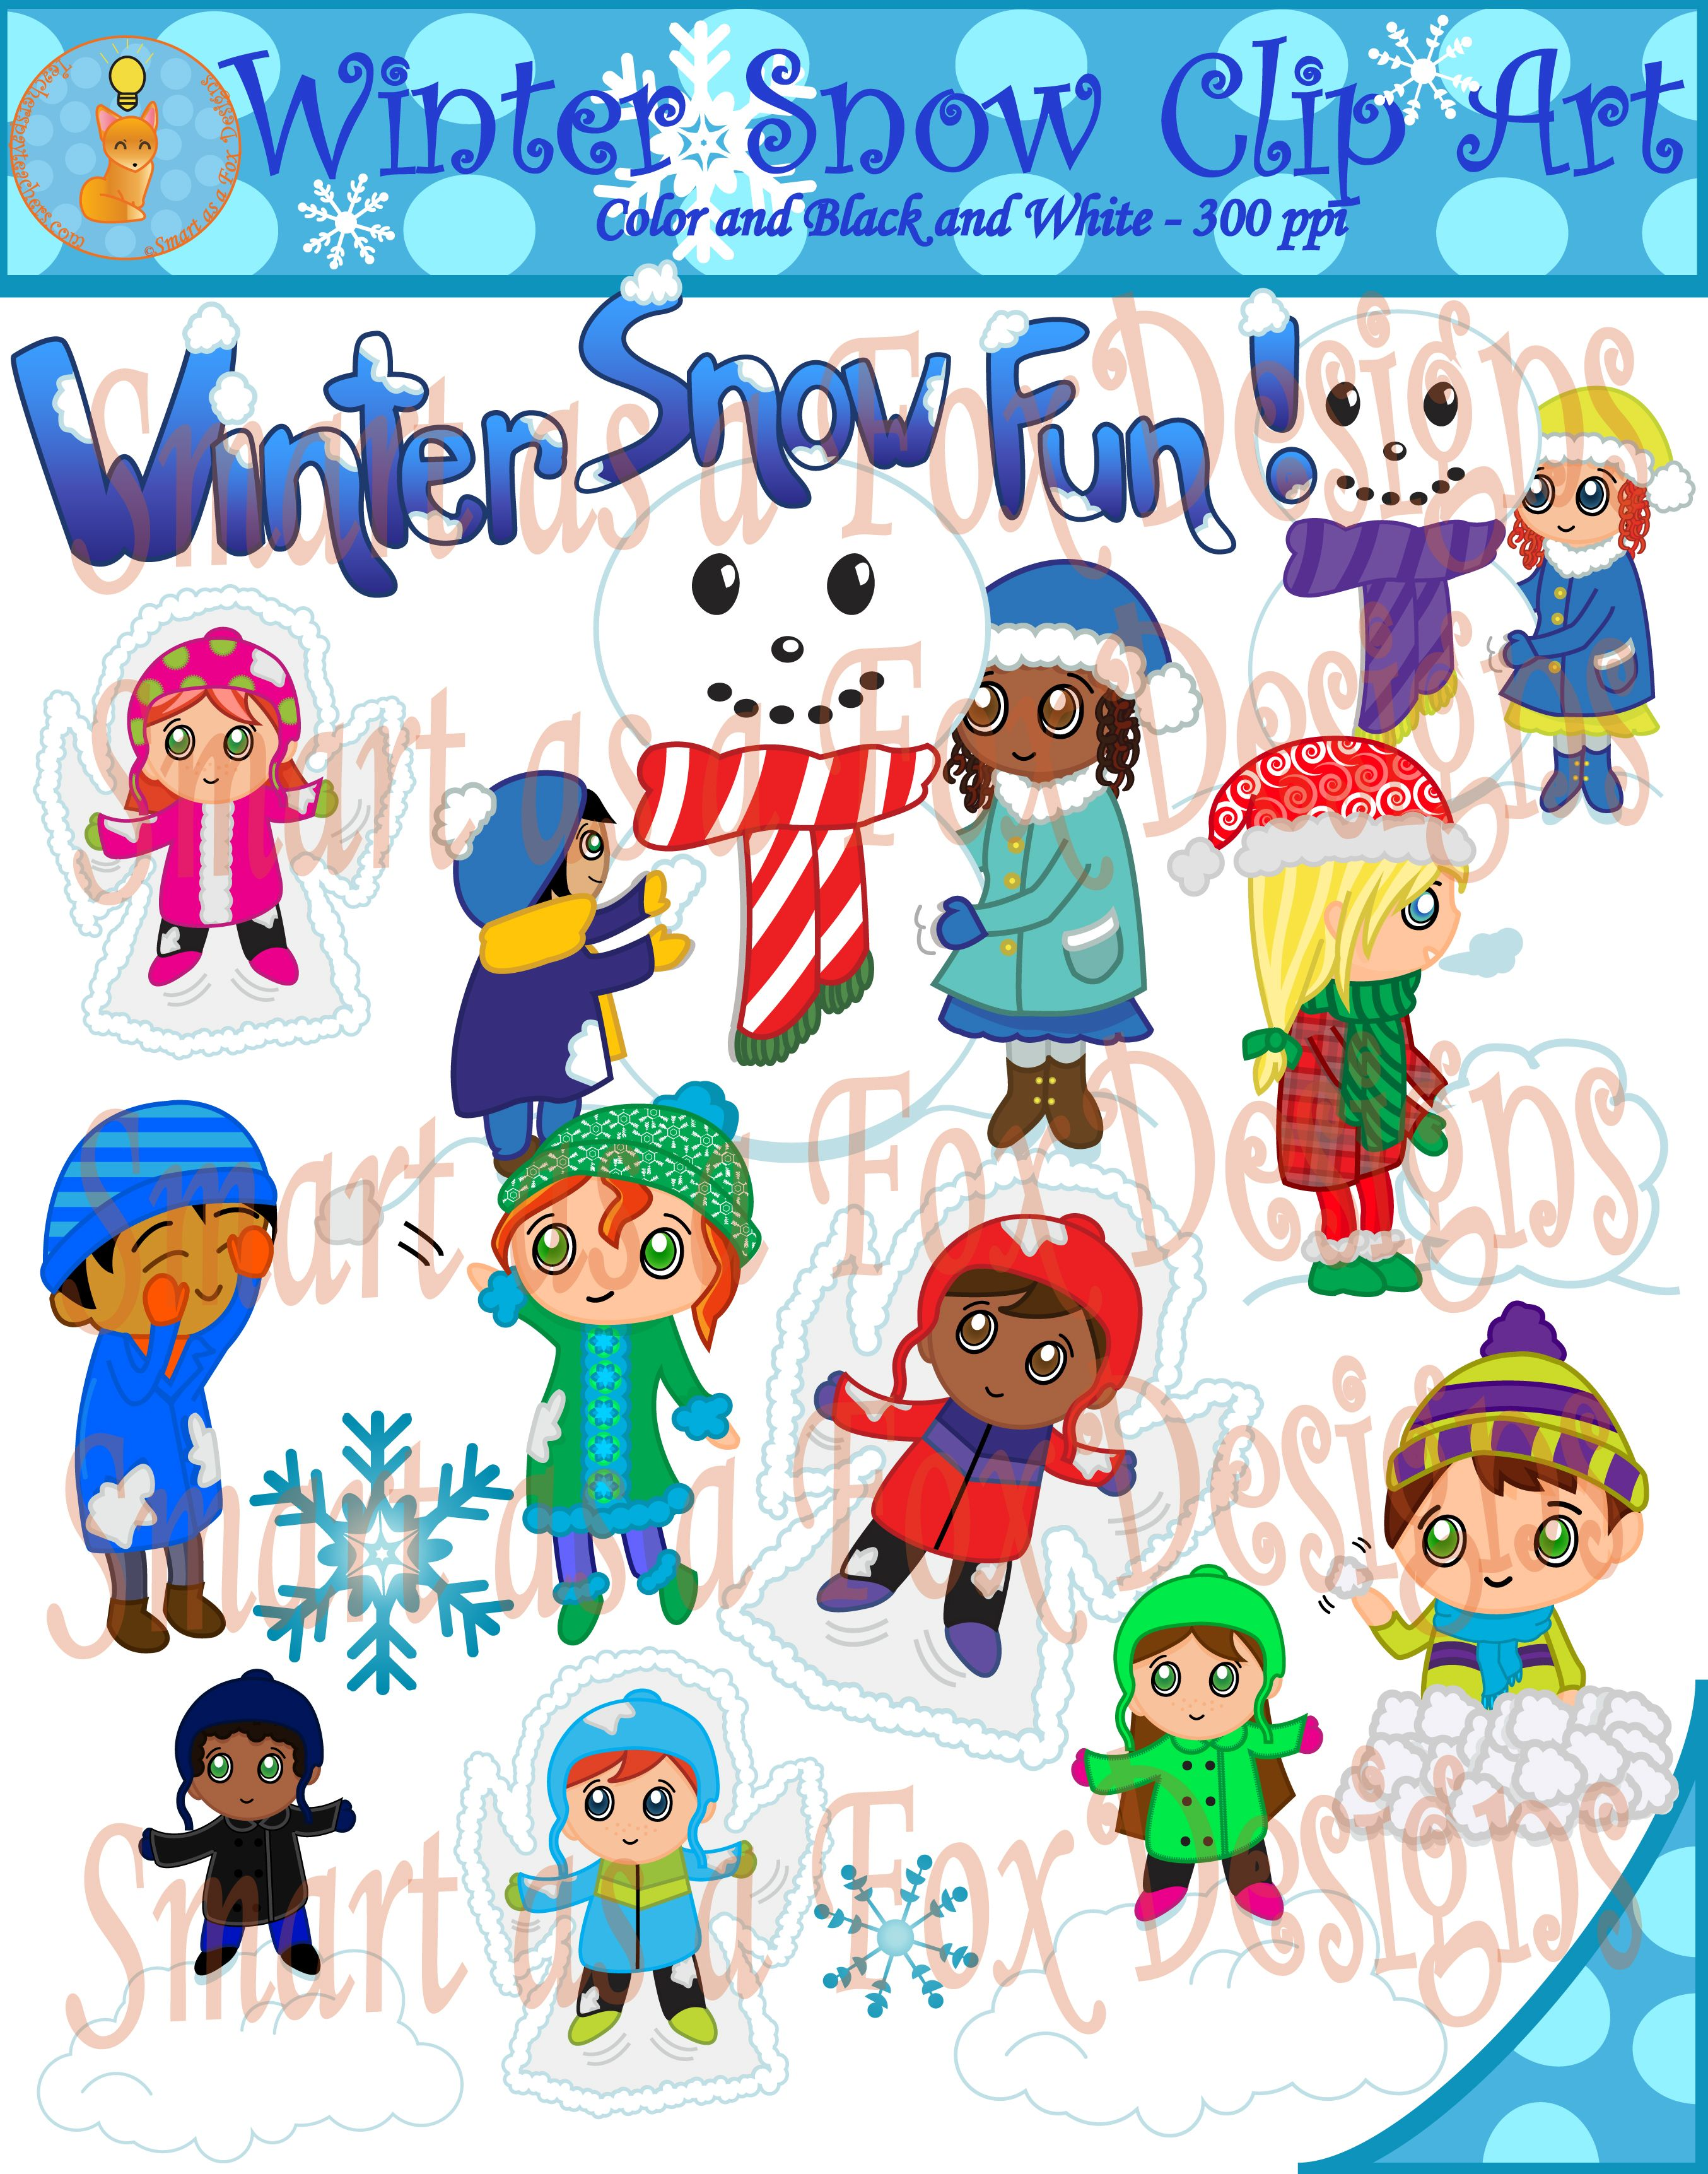 winter snow fun clipart by smart as a fox designs this collection contains 41 clip art pieces 25 vividly colored images and 16 black and white  [ 2708 x 3446 Pixel ]